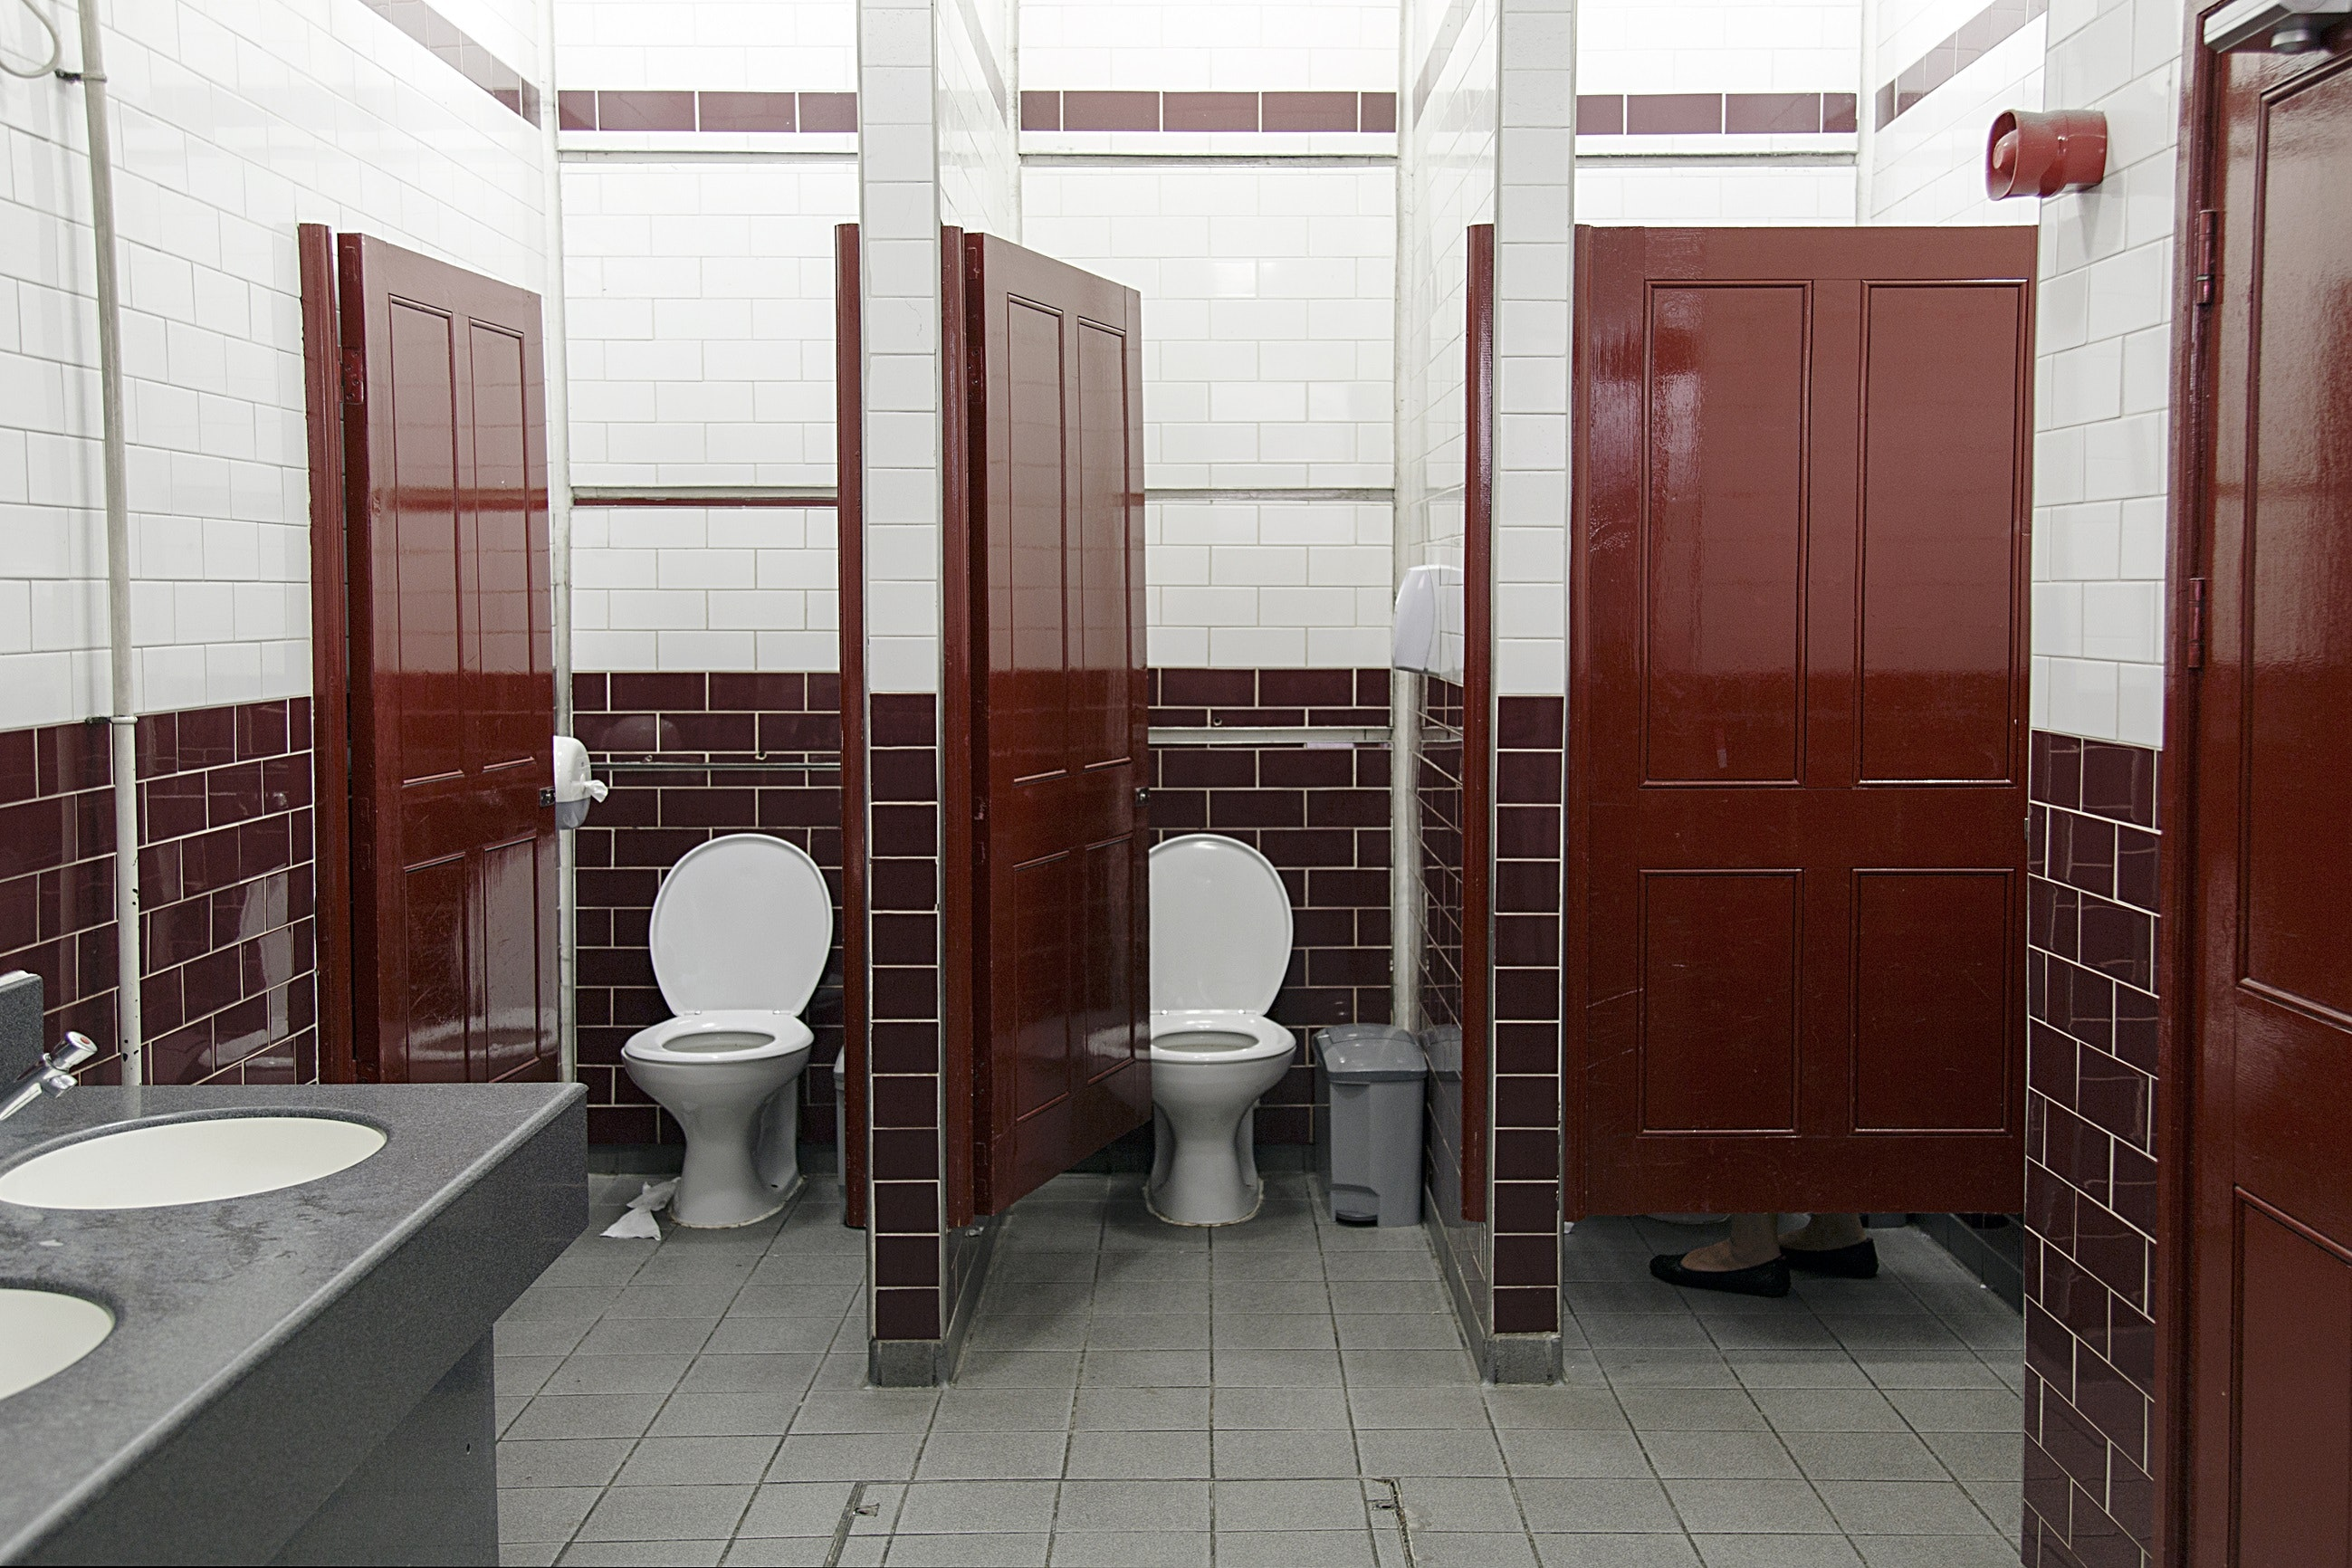 What goes into the toilet doesn't always stay there, and other ...